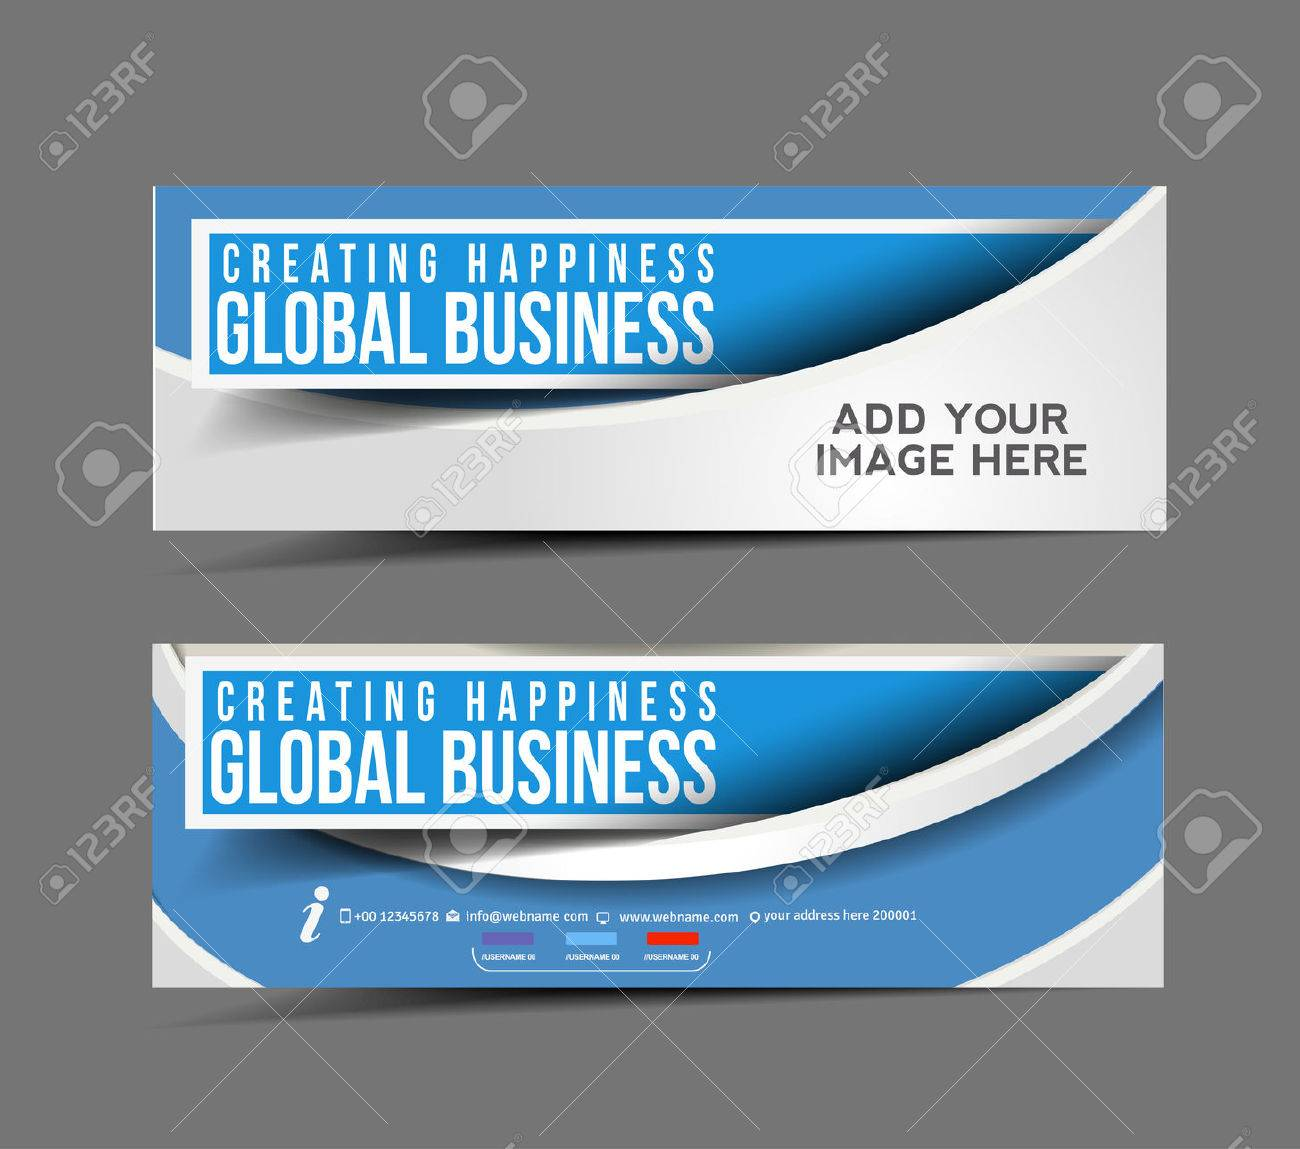 Global Business Web Banner, Header Layout Template. Stock Vector - 27142842